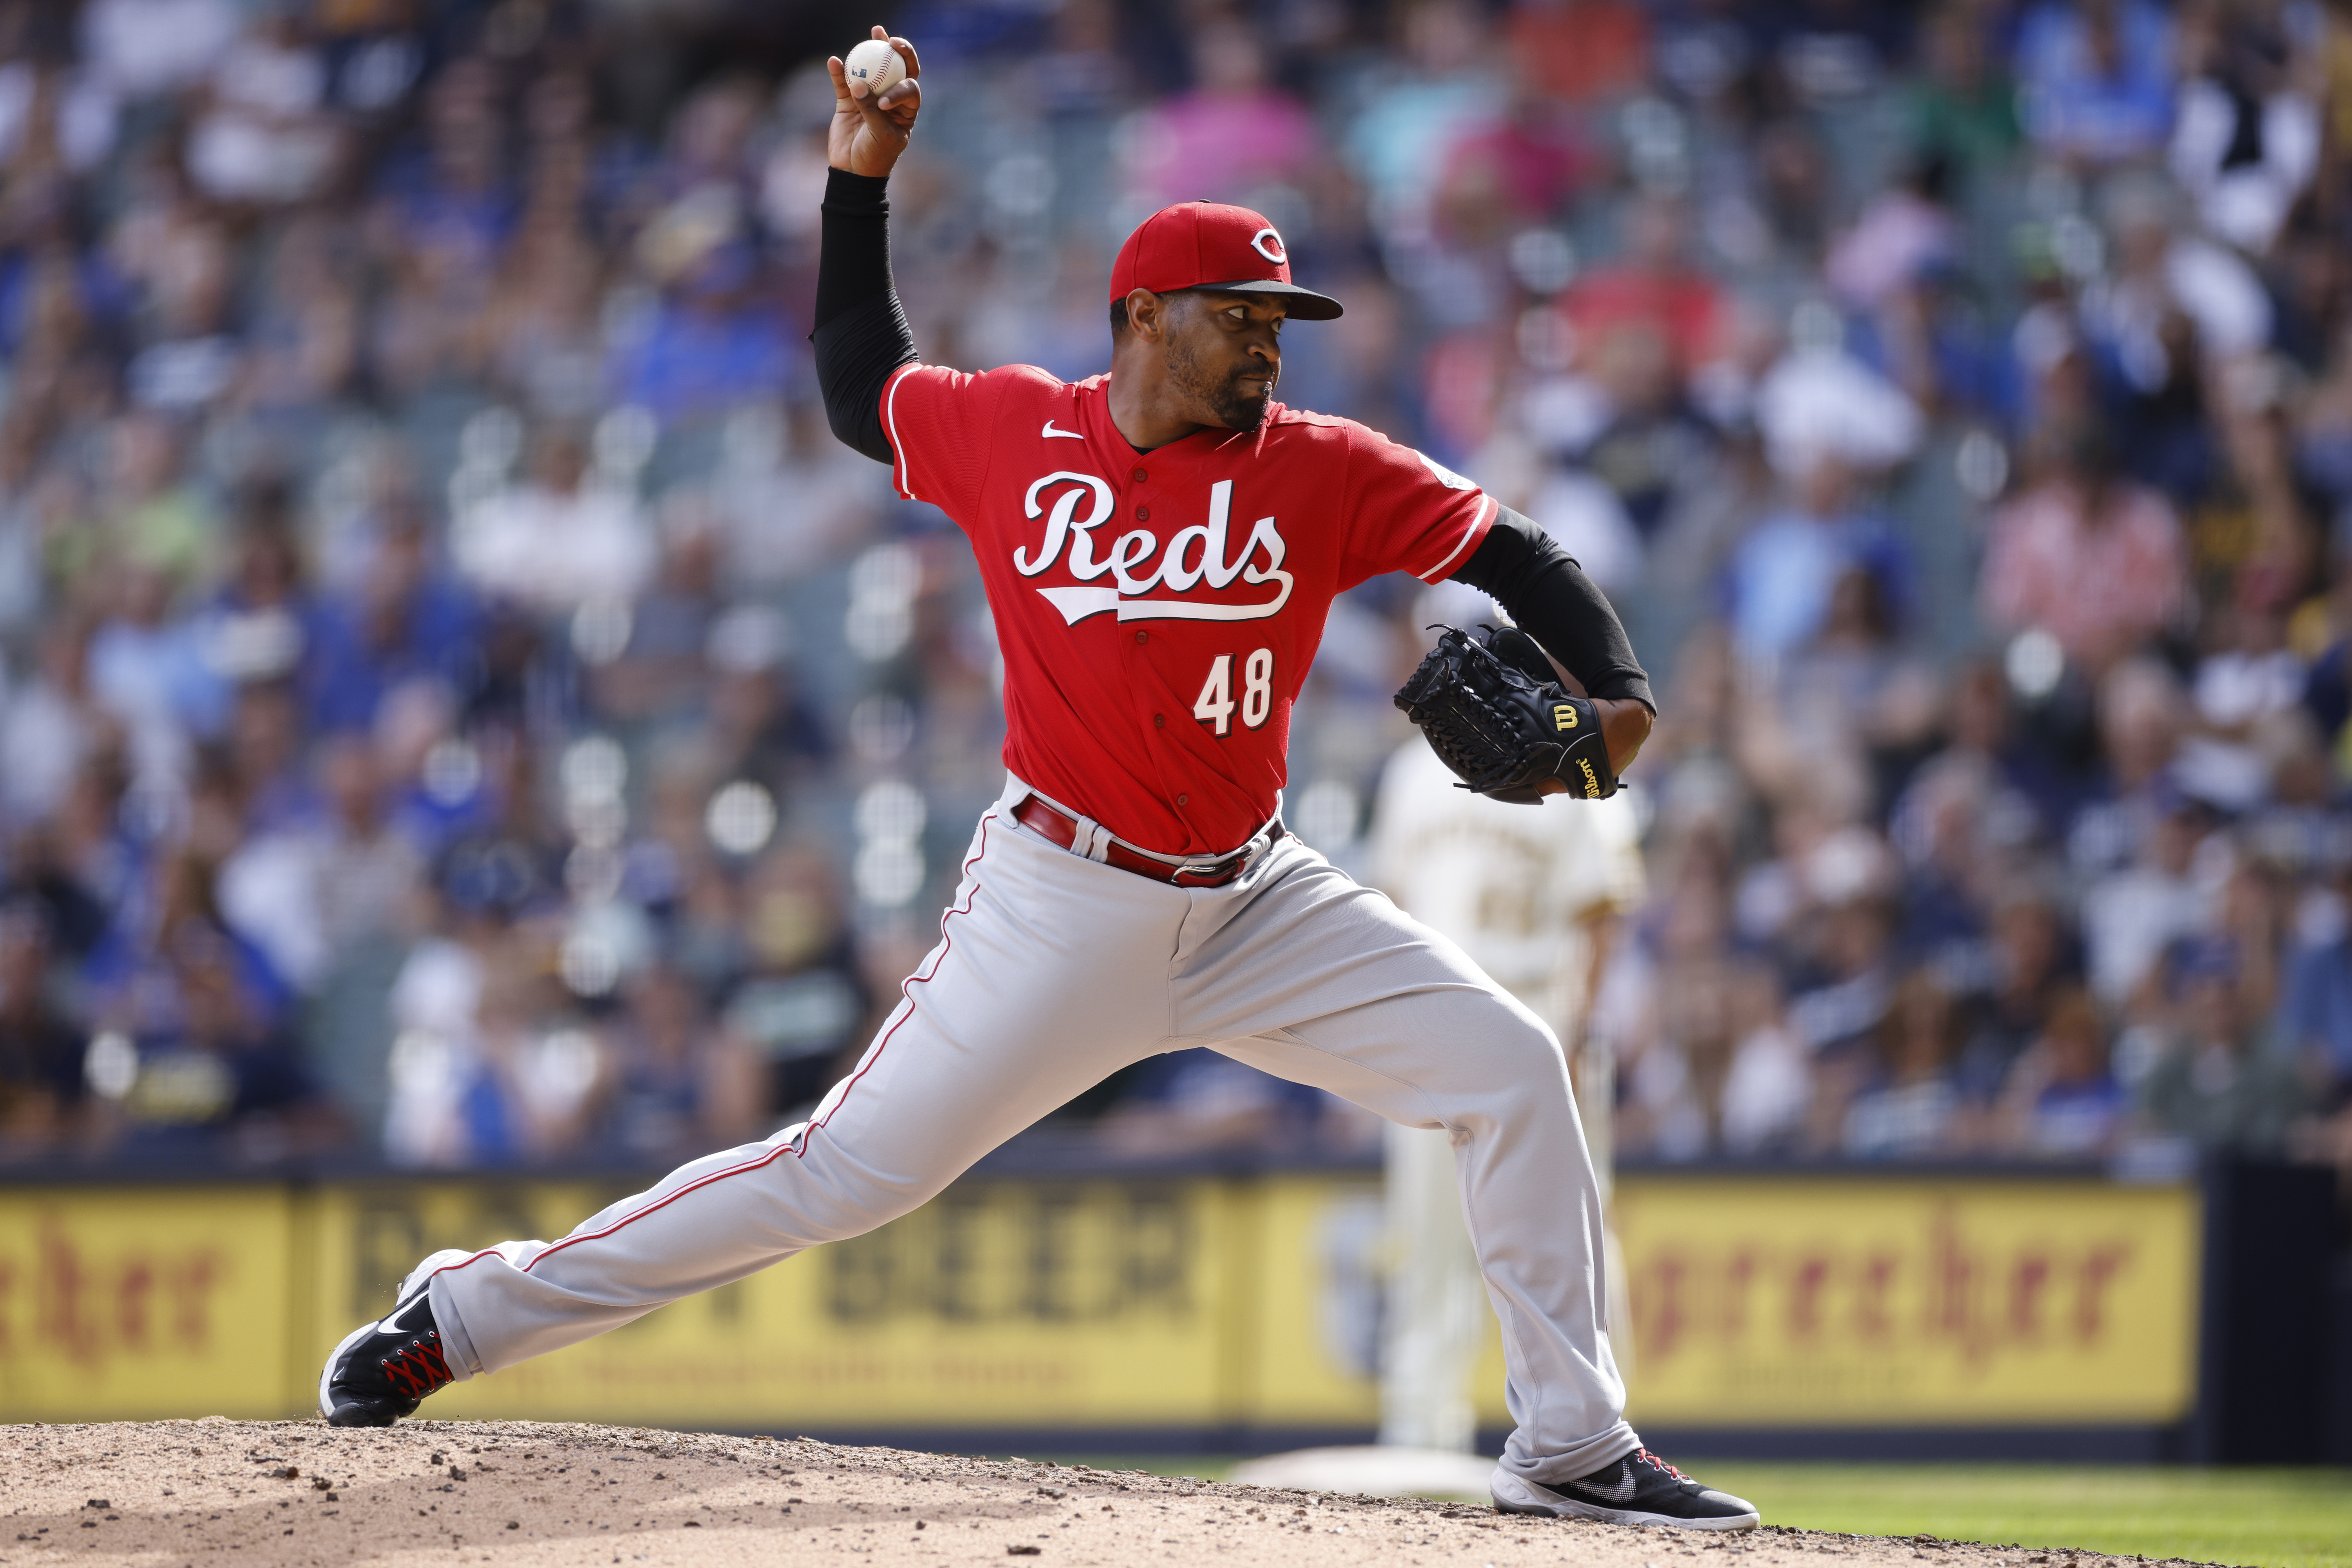 MLB: AUG 26 Reds at Brewers